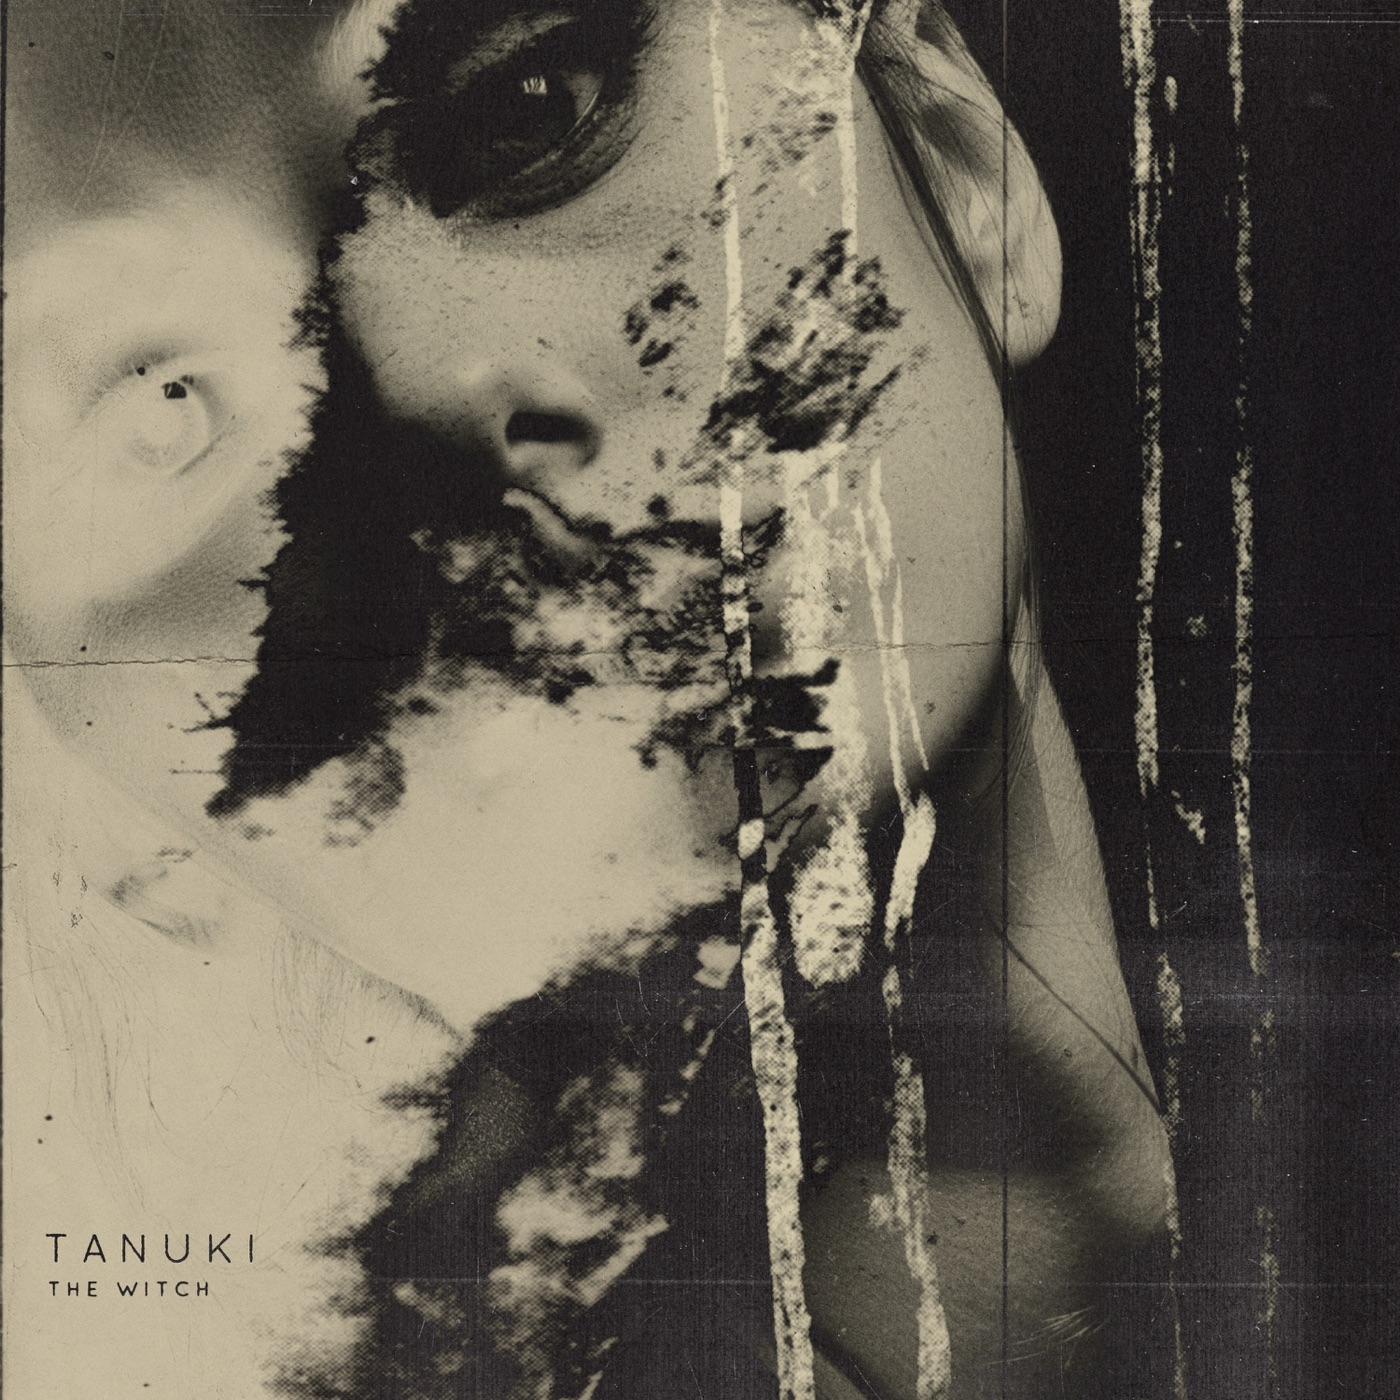 Tanuki - The Witch [single] (2019)